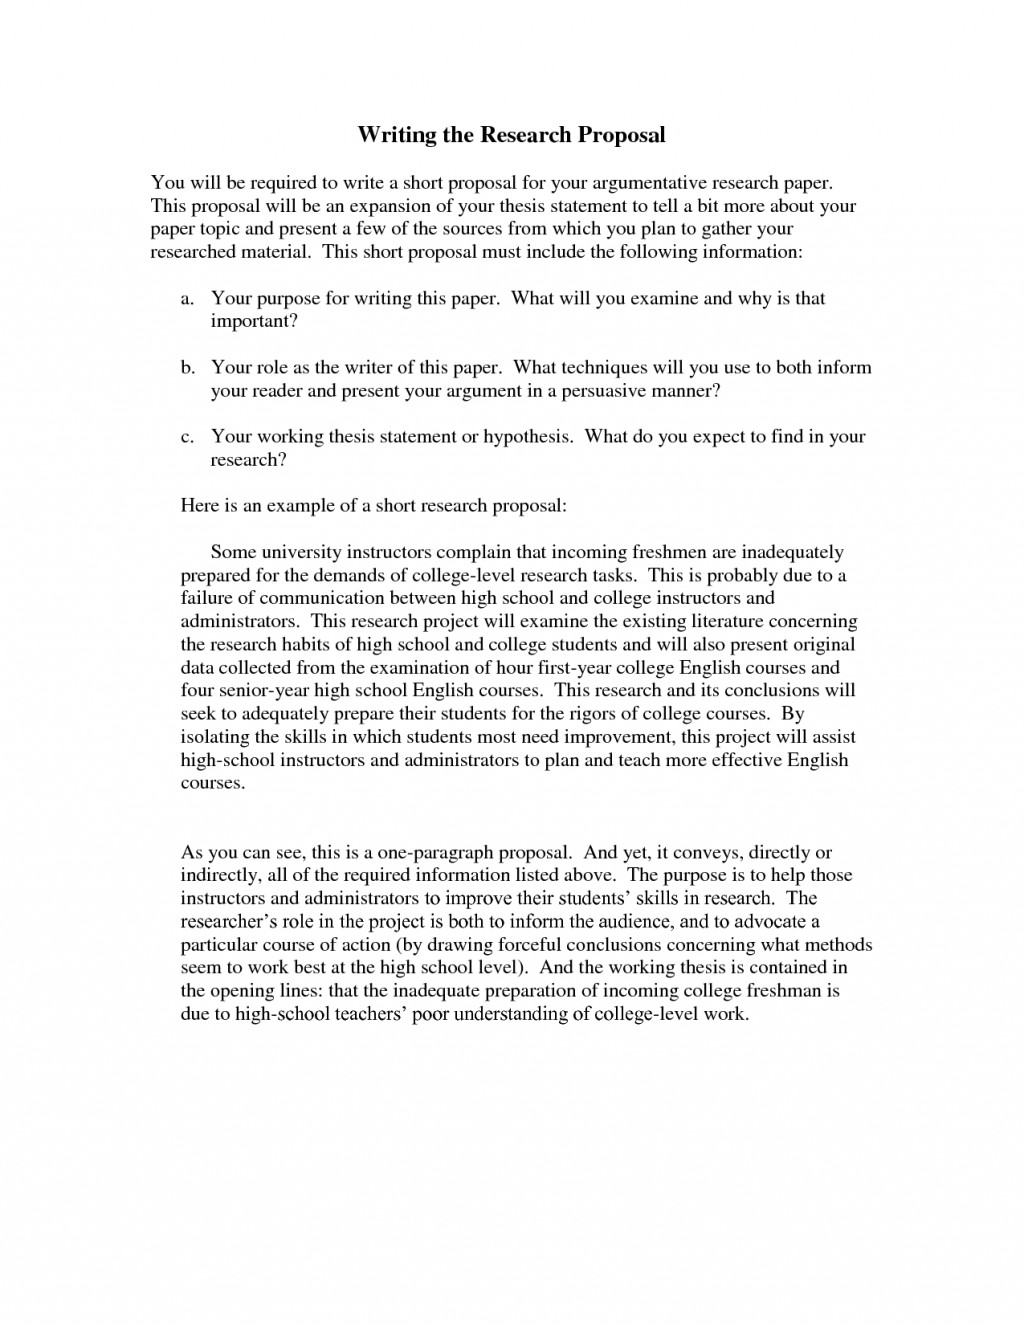 003 Proposal Essay Excellent Example Paper Research Sample Pdf Large